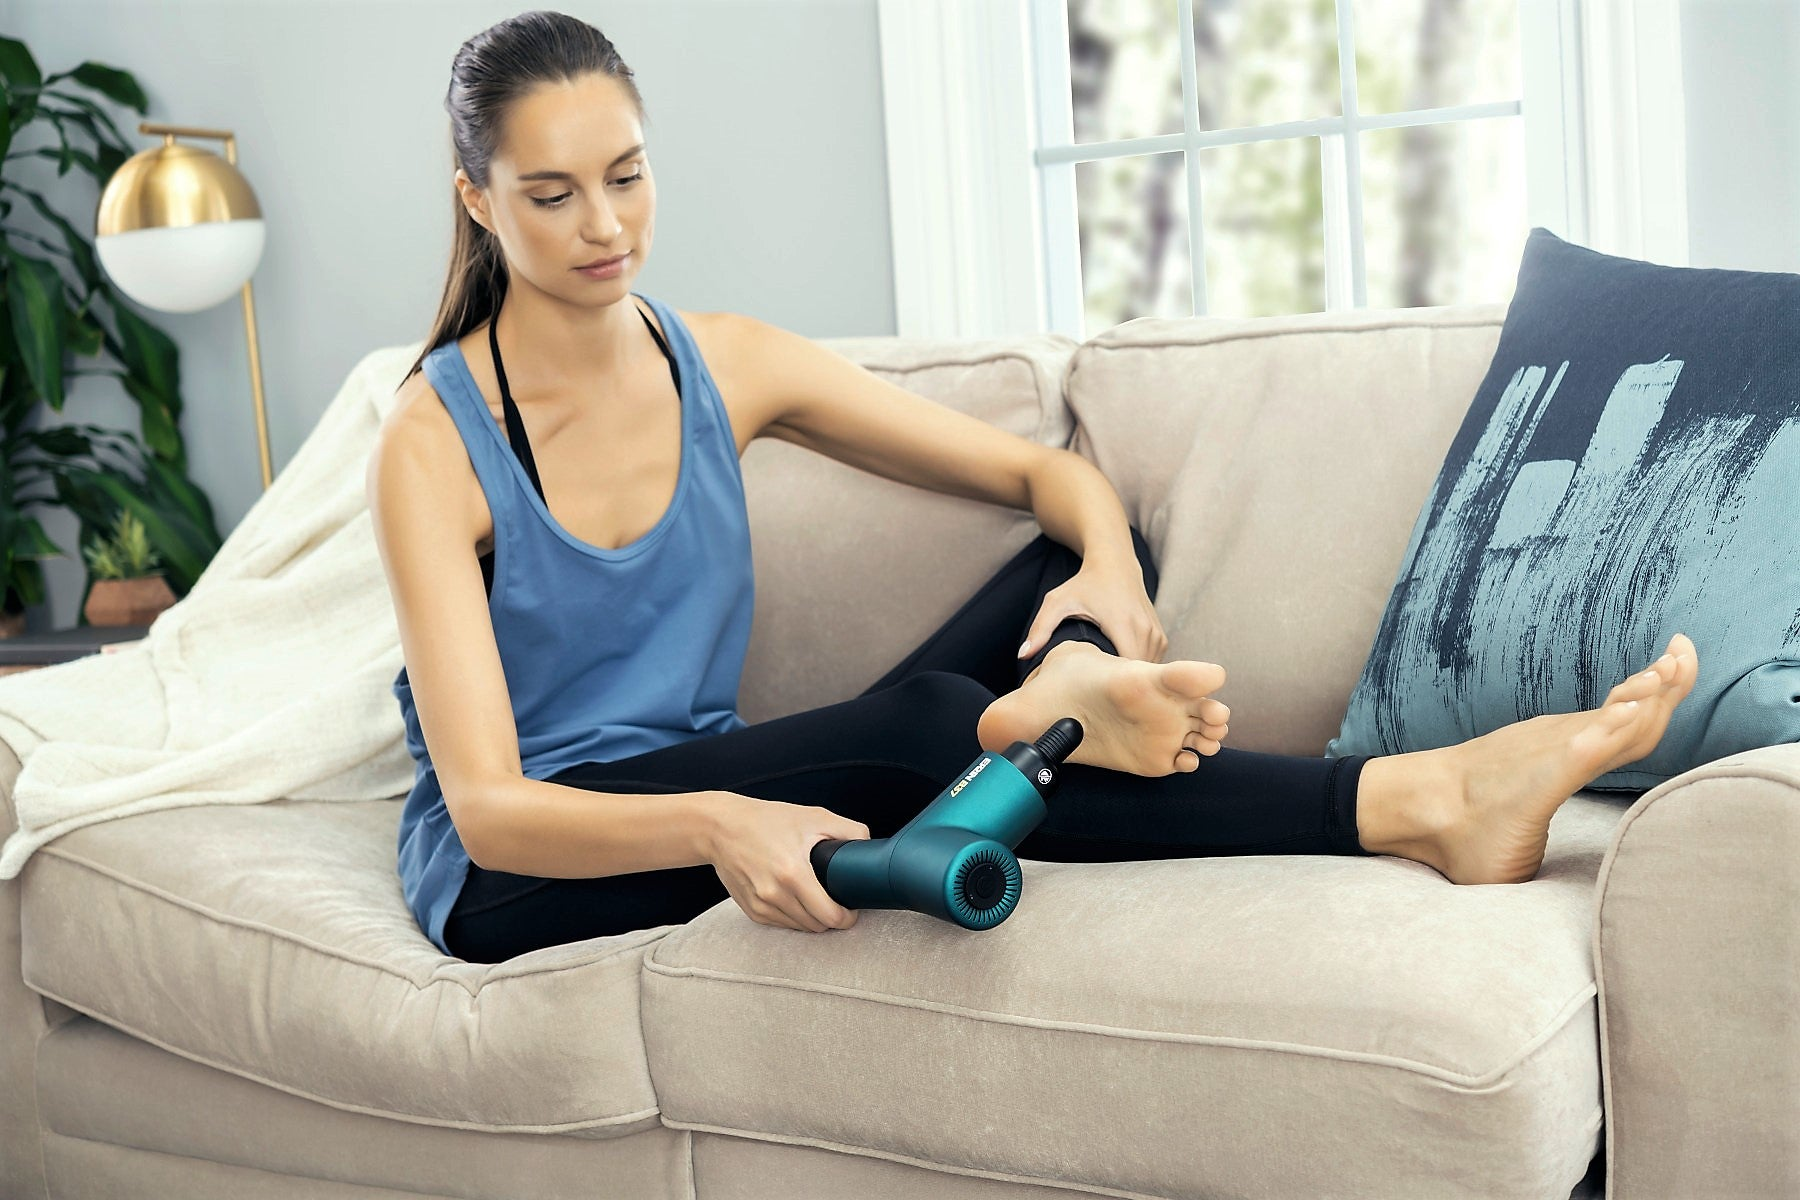 Young woman massaging her foot in her living room with a massage gun